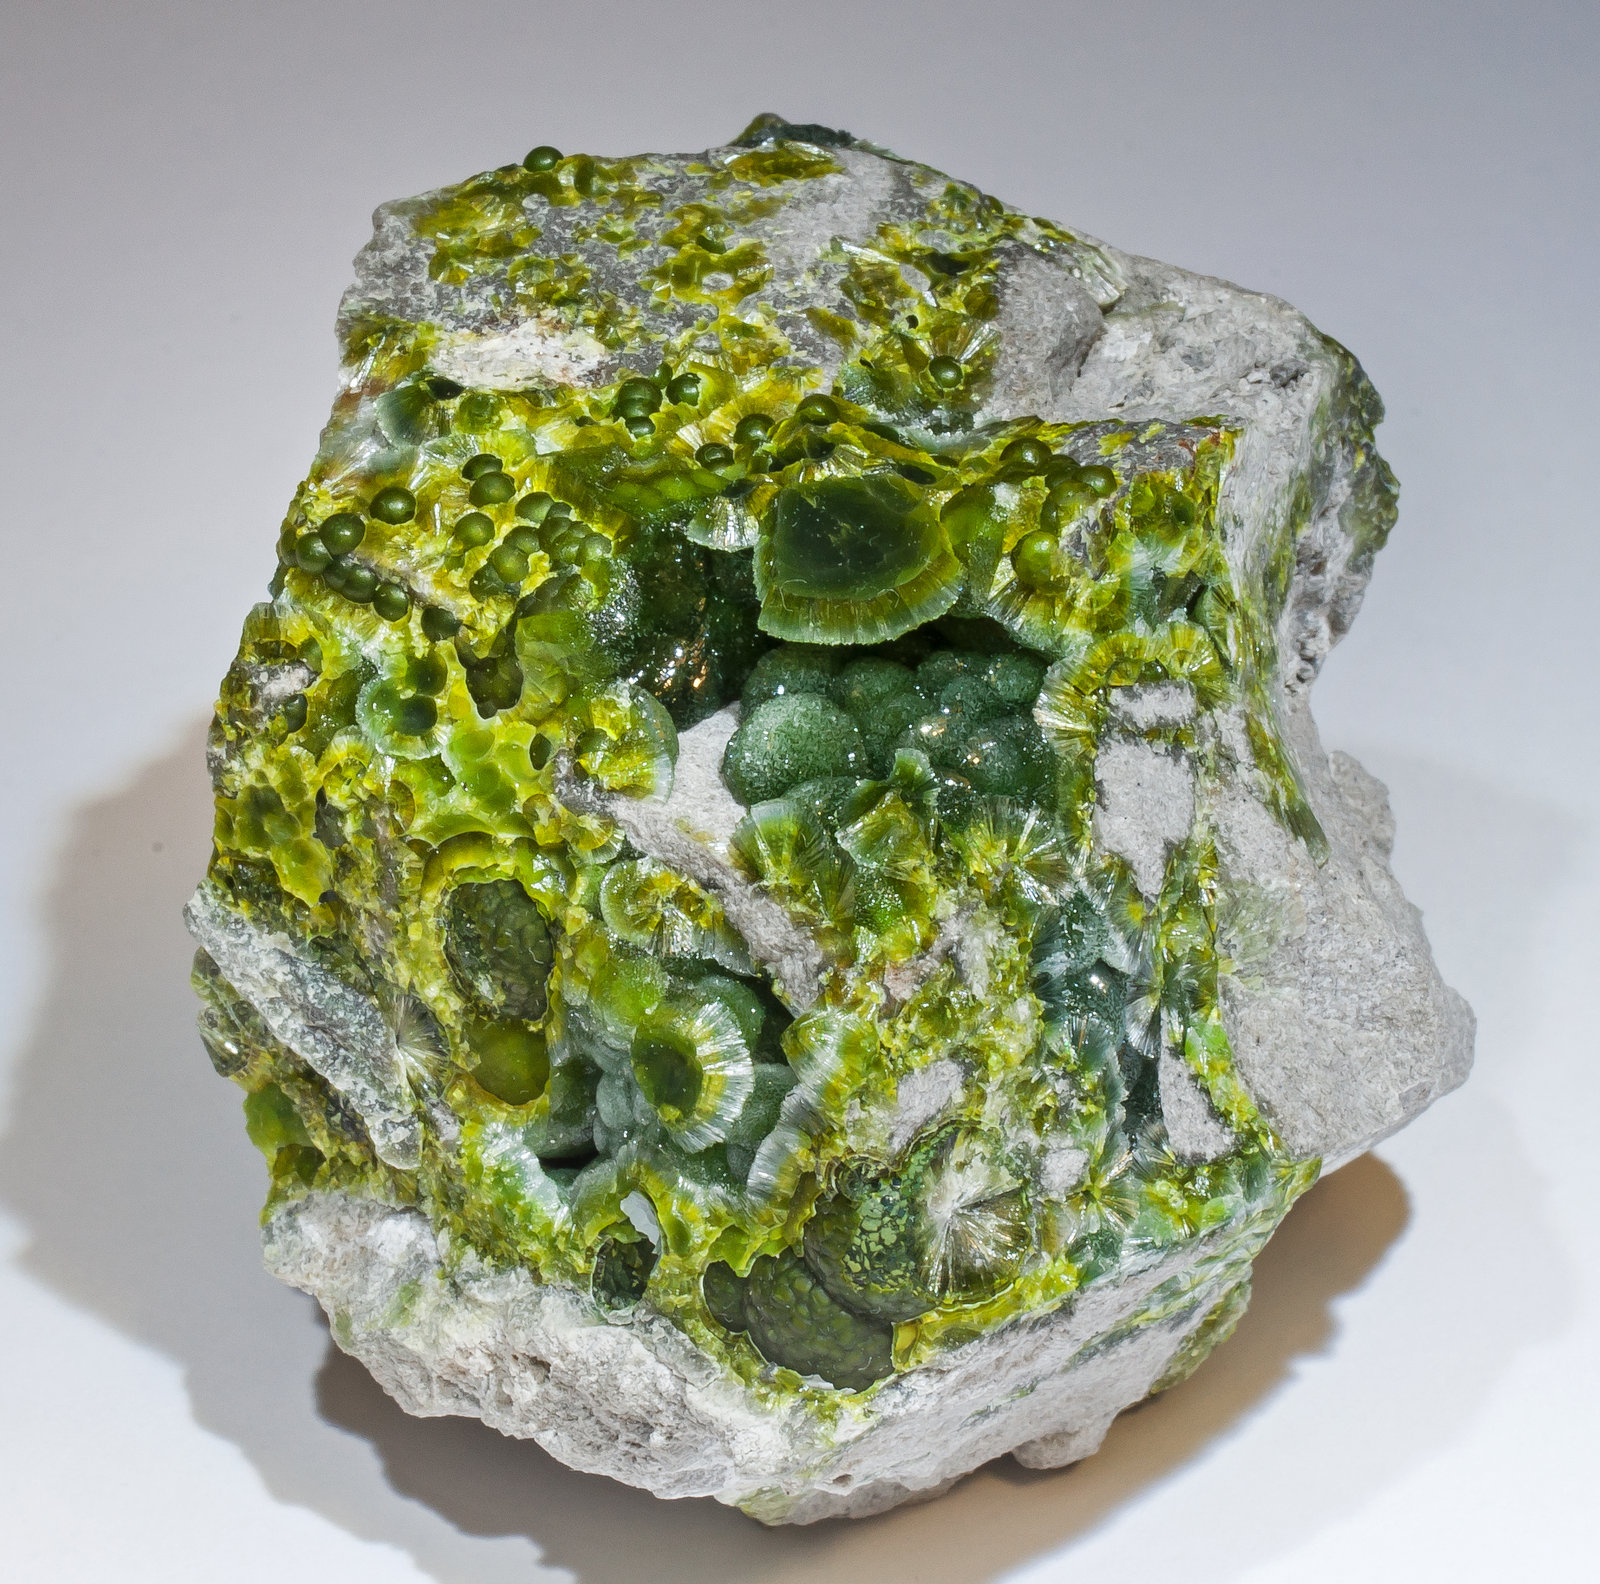 specimens/s_imagesAM2/Wavellite-HL14AM2f.jpg